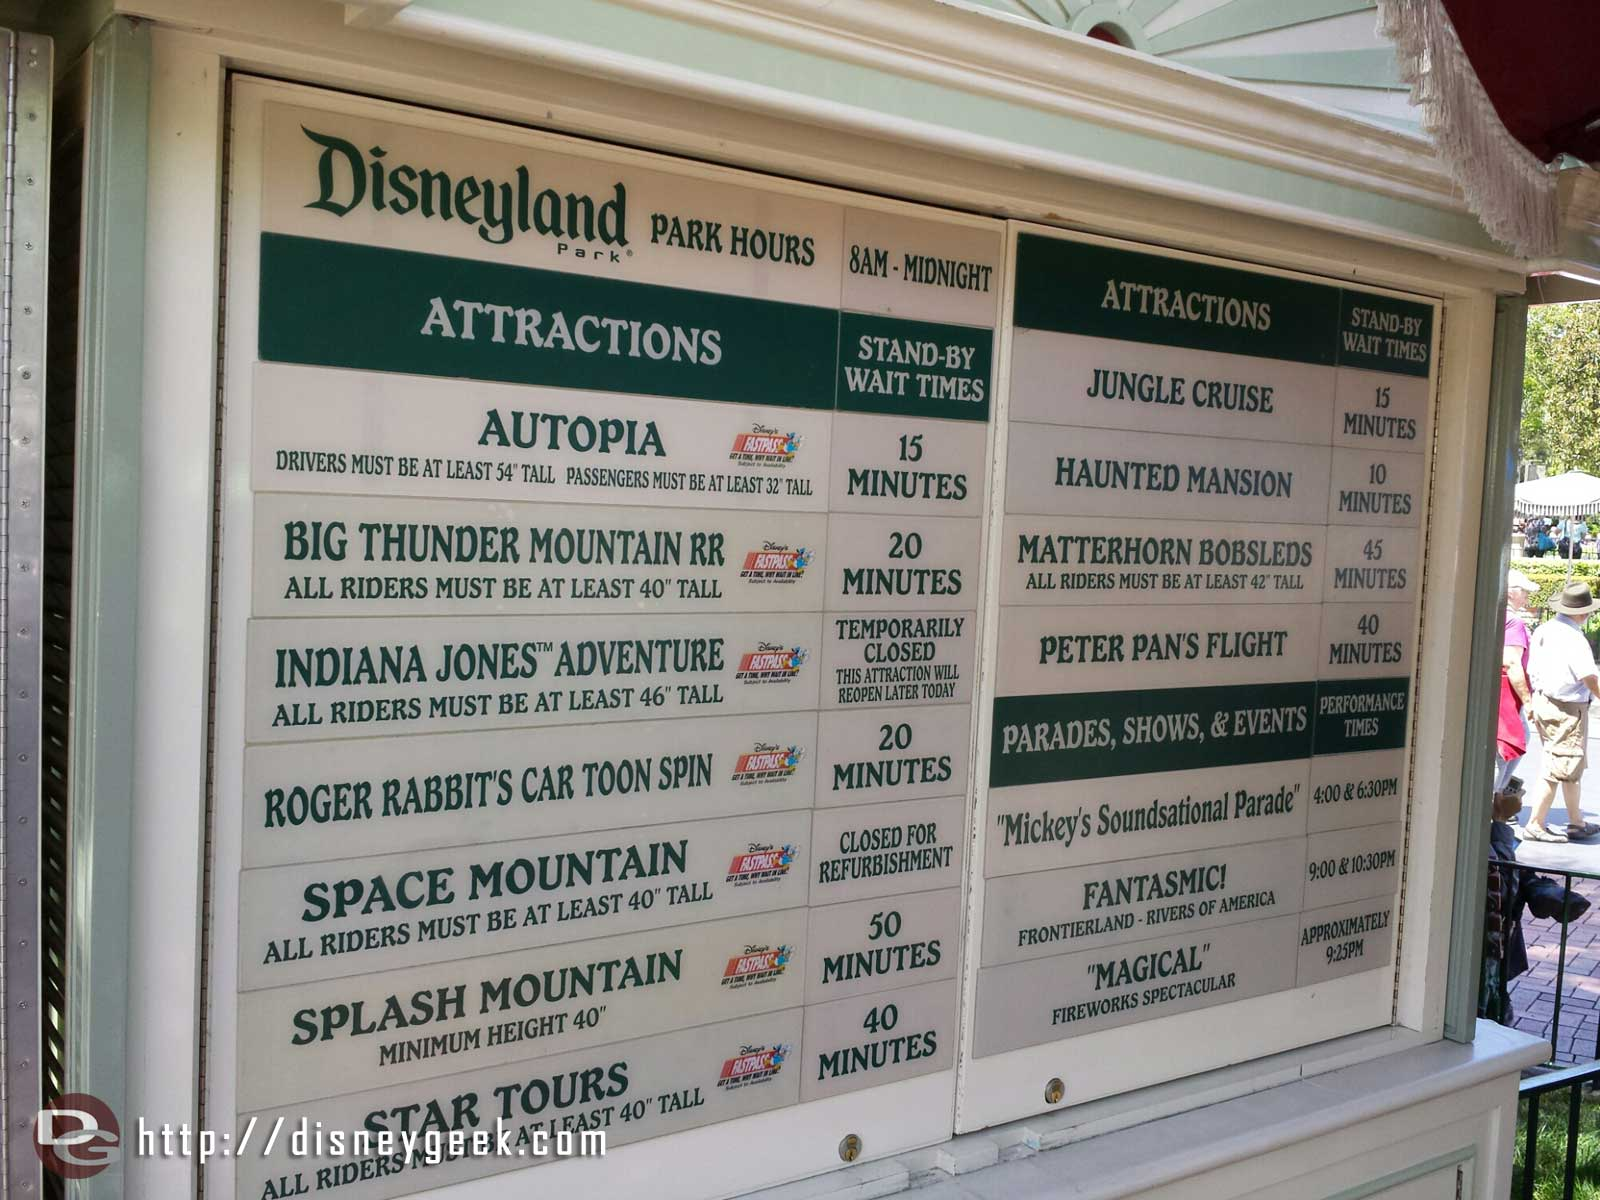 #Disneyland wait times at 2:38pm